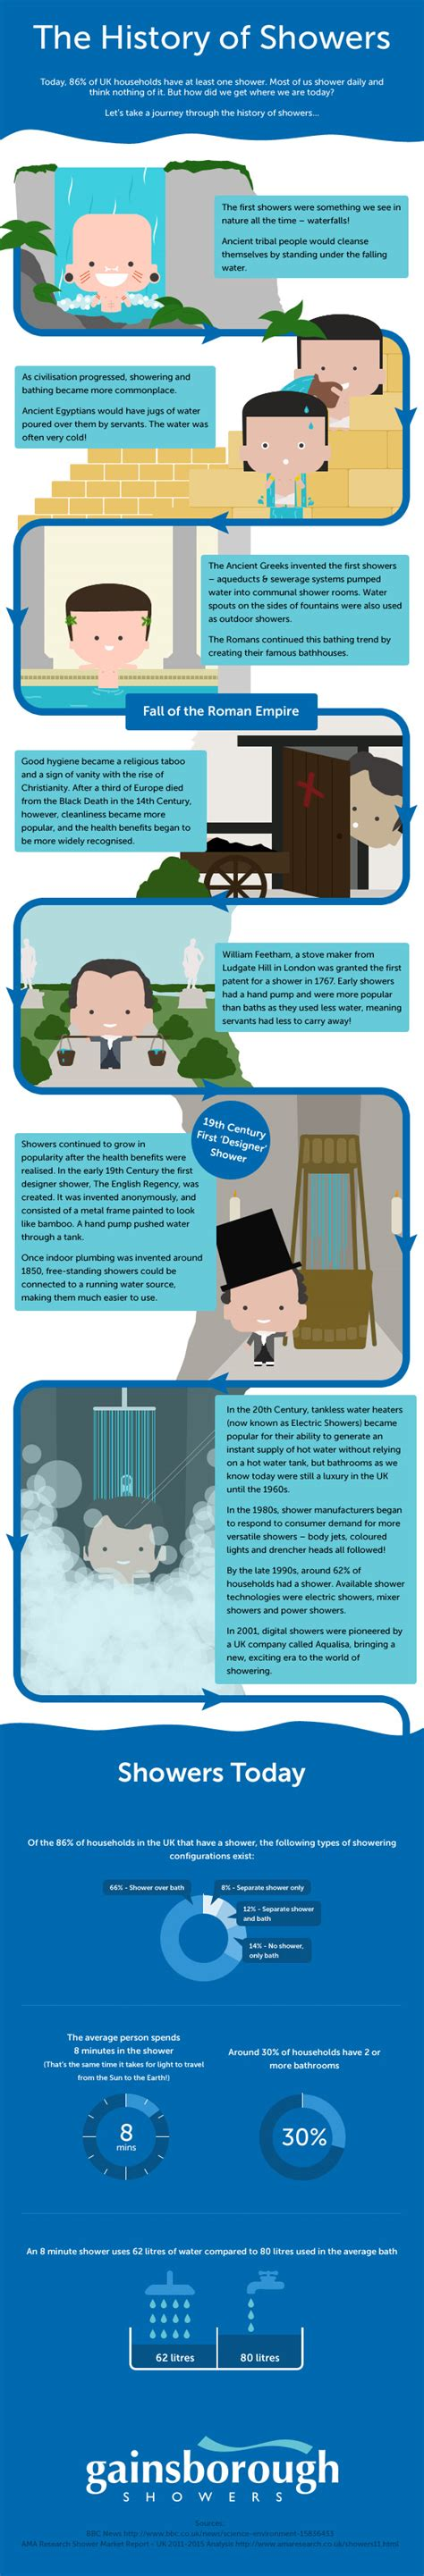 History Of Showers the history of showers infographic gainsborough showers